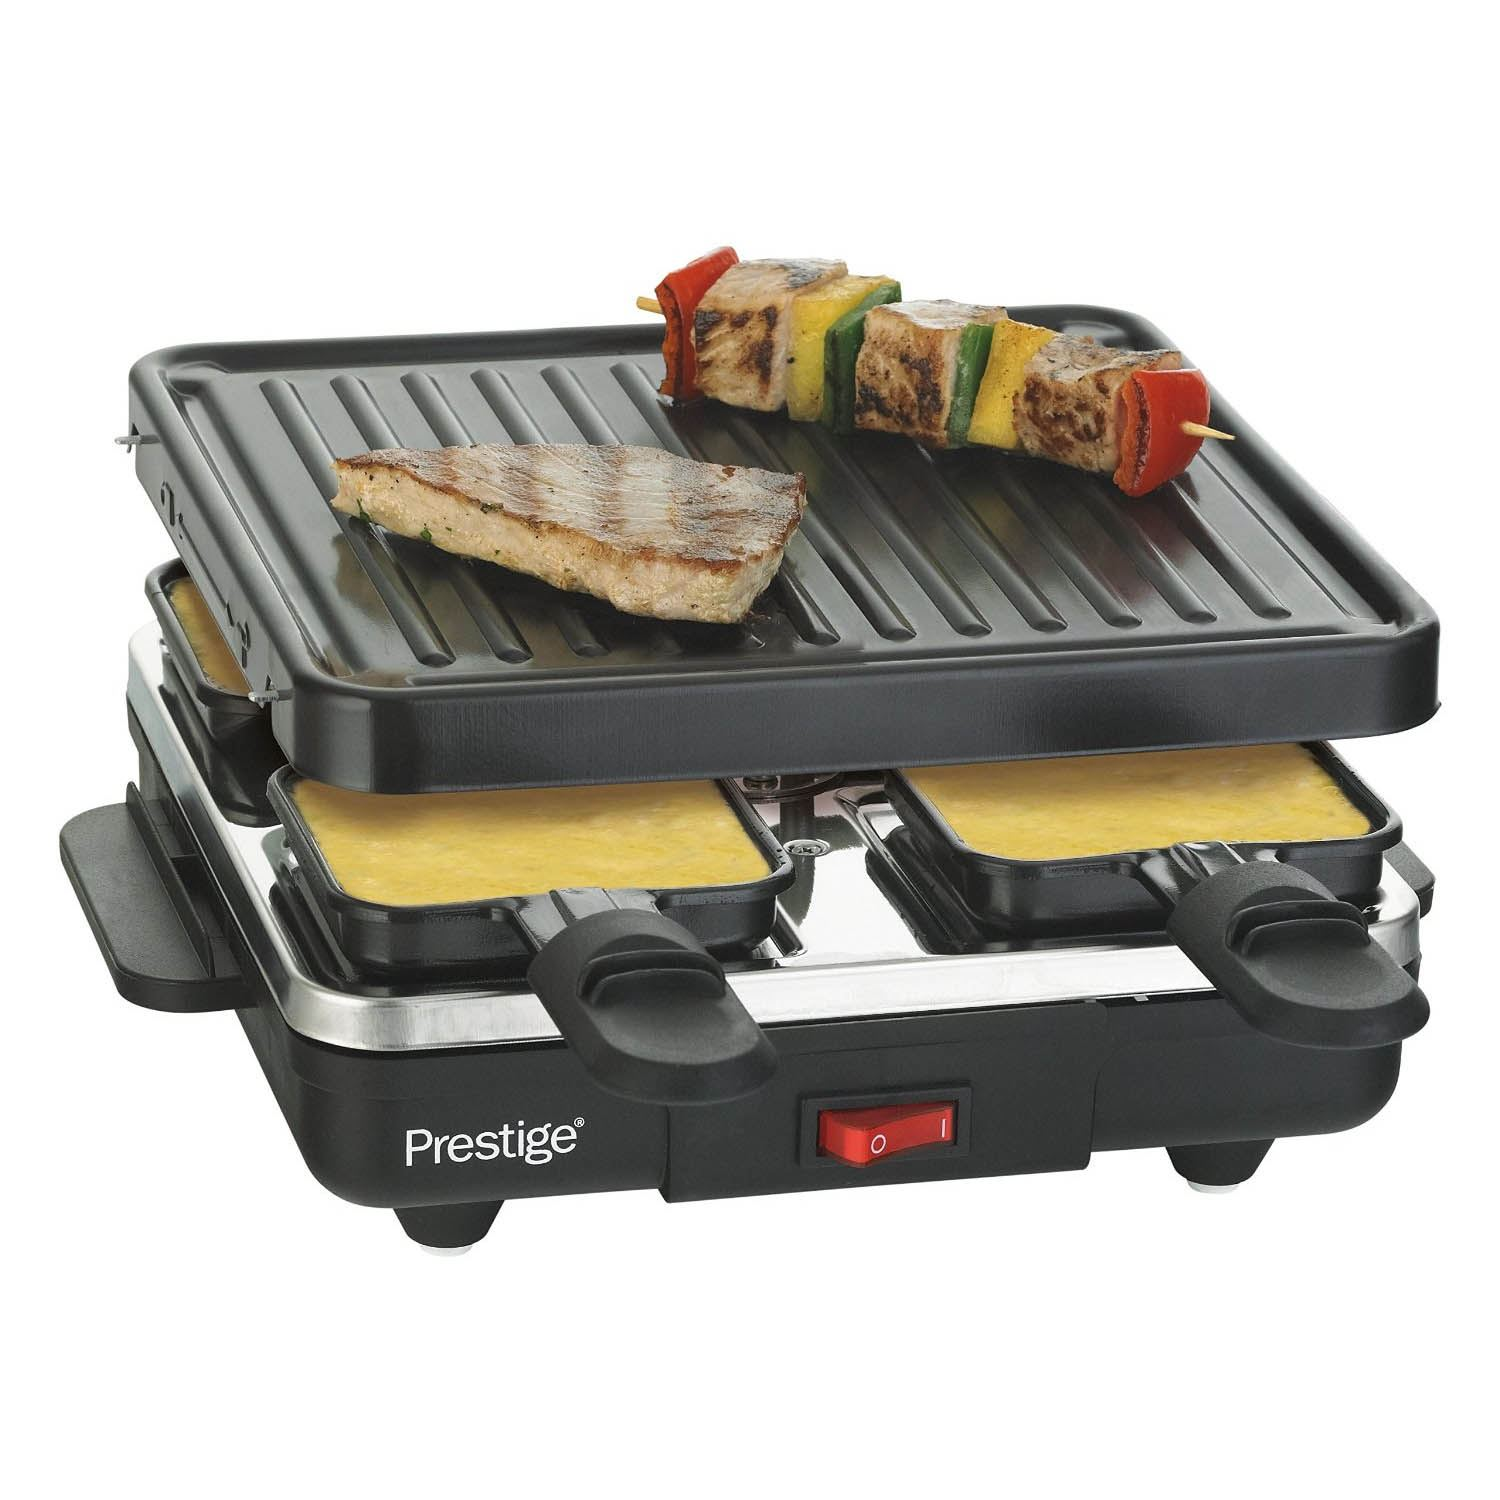 Prestige 59908 Non-stick Pan Cheese Raclette Grill BBQ New